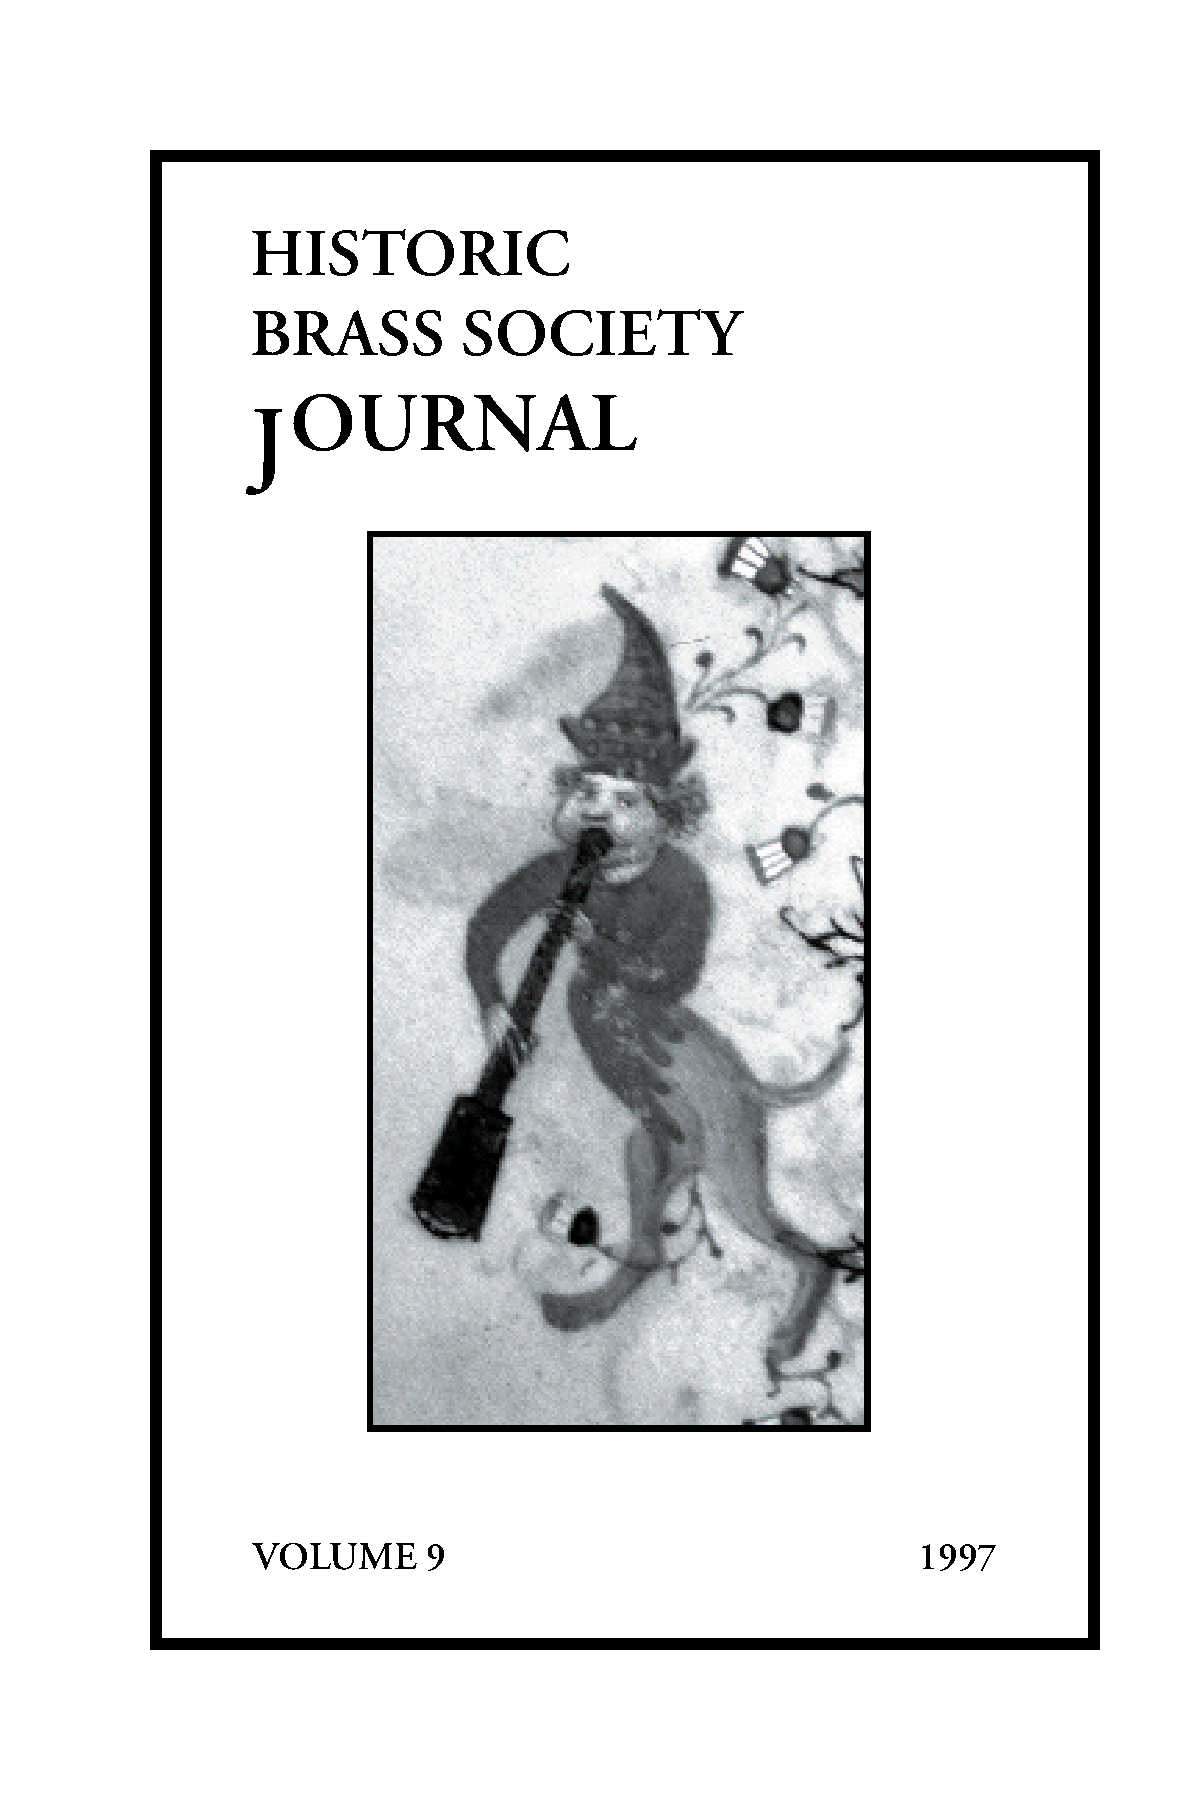 Historic Brass Journal - Volume 9 - 1997